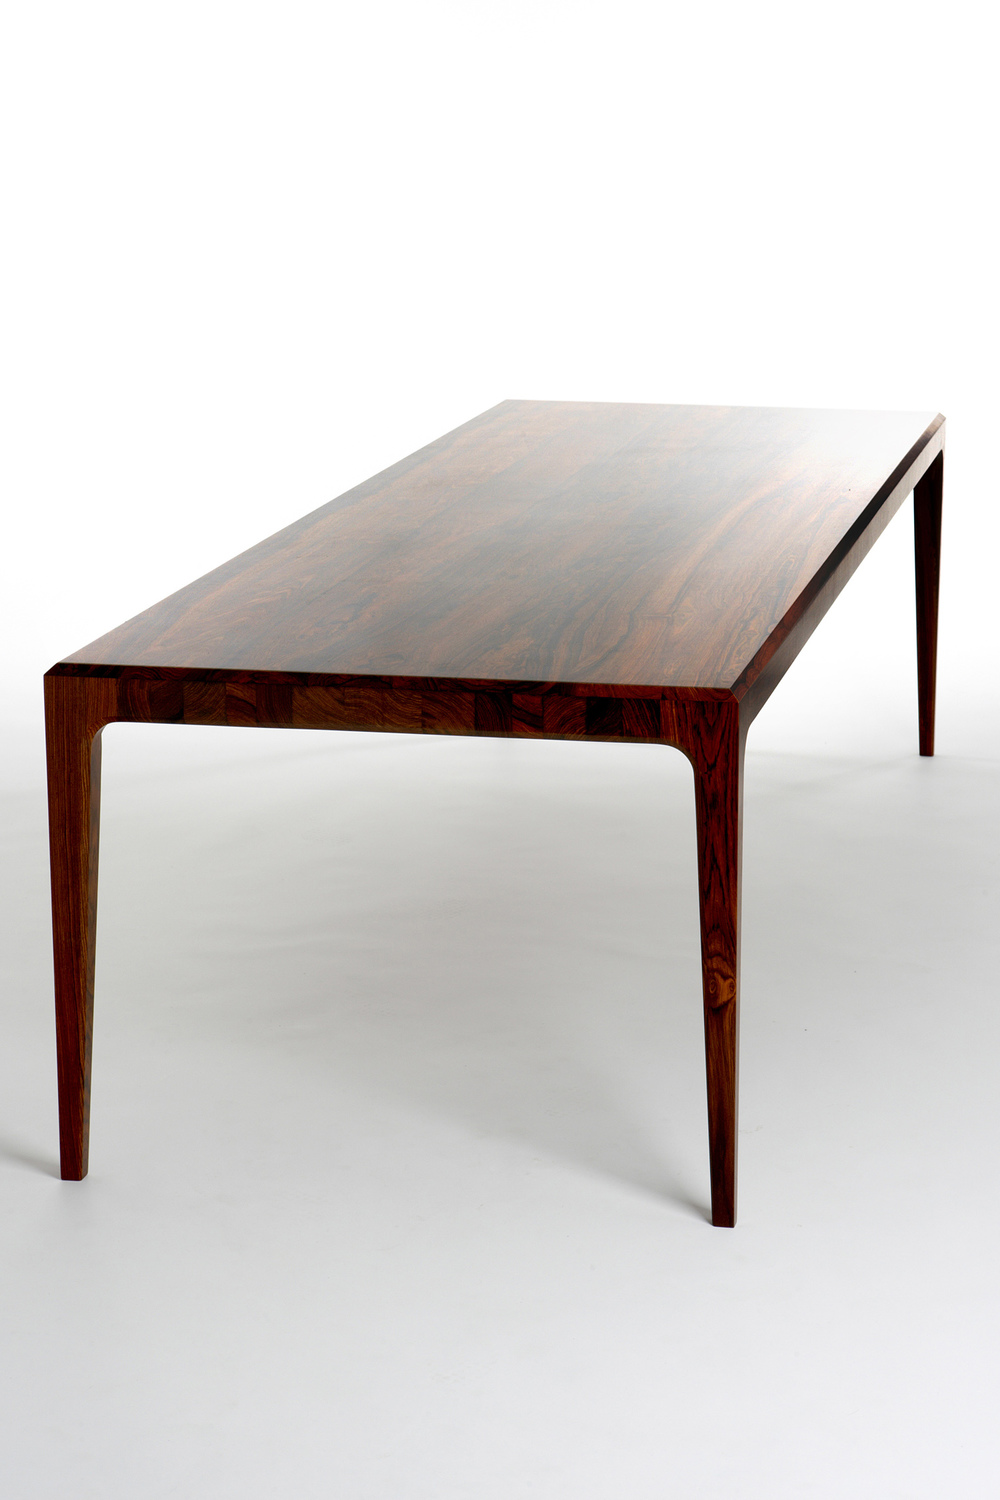 PD60 dining table1_resize.jpg